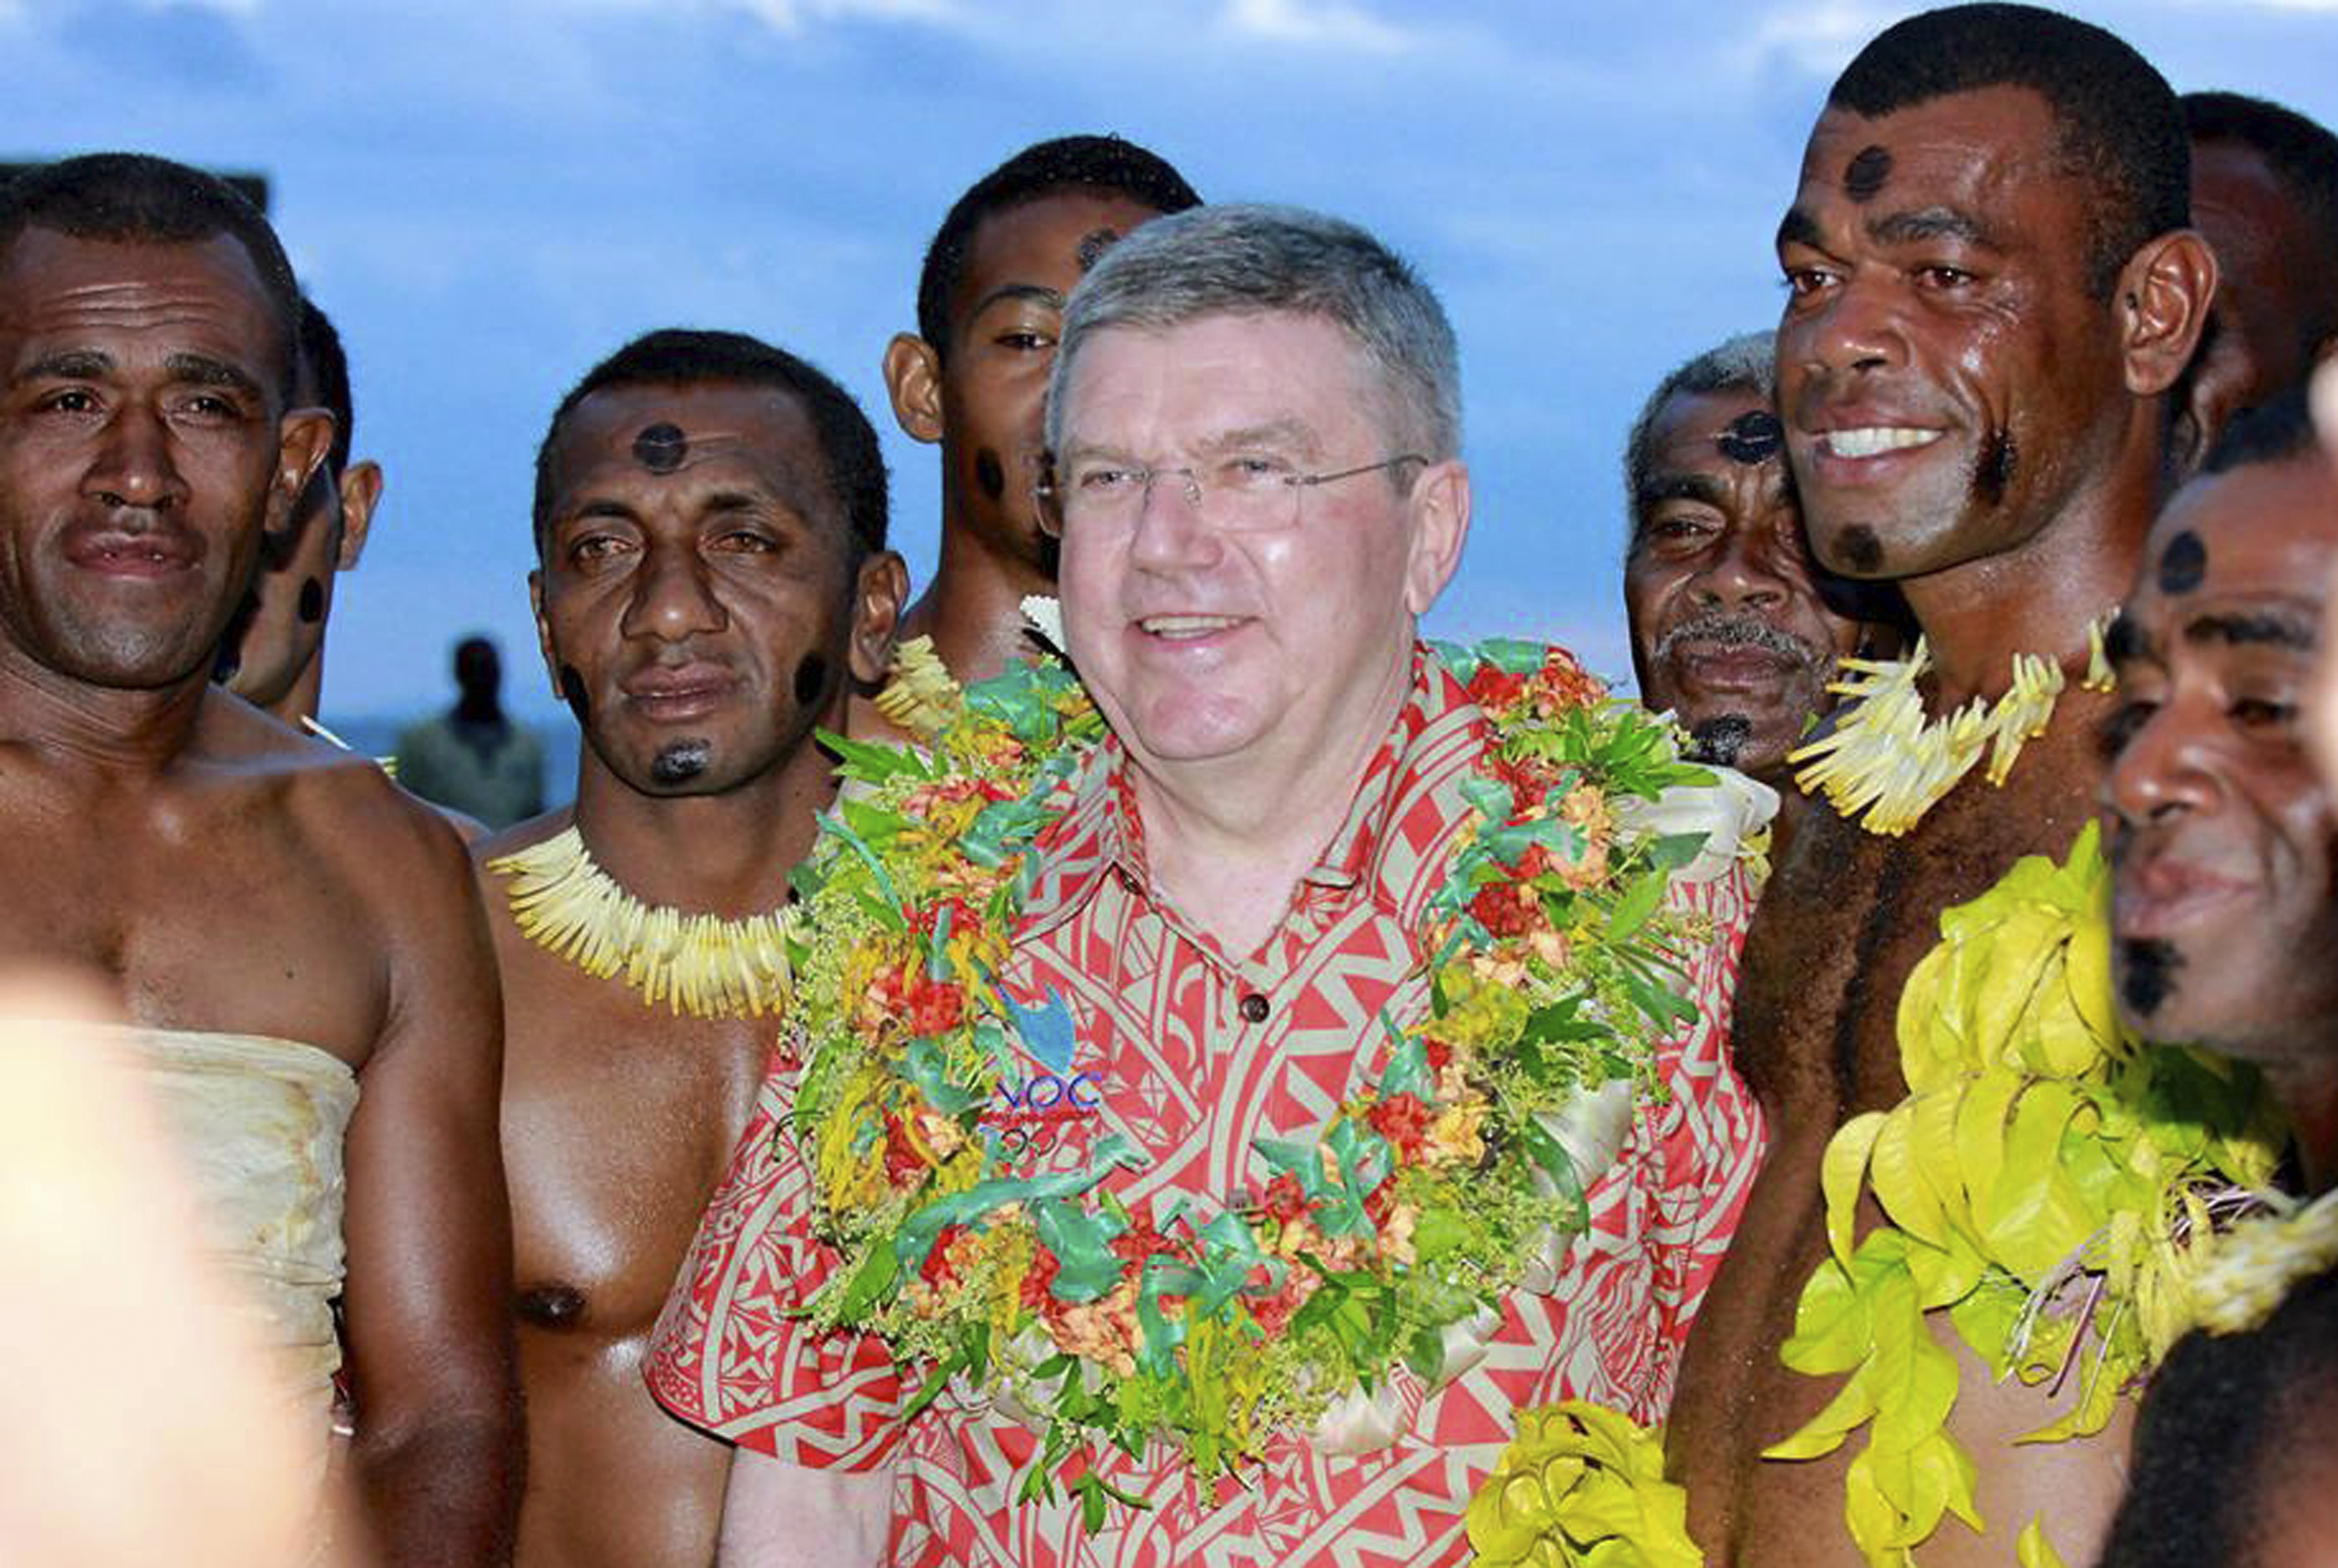 International Olympic Committee President Thomas Bach, center, poses for a photo with local men in Suva, Fiji, Saturday, May 2, 2015. Bach, addressing the Oceania National Olympic Committee meeting, has urged national and regional Olympic bodies to lobby